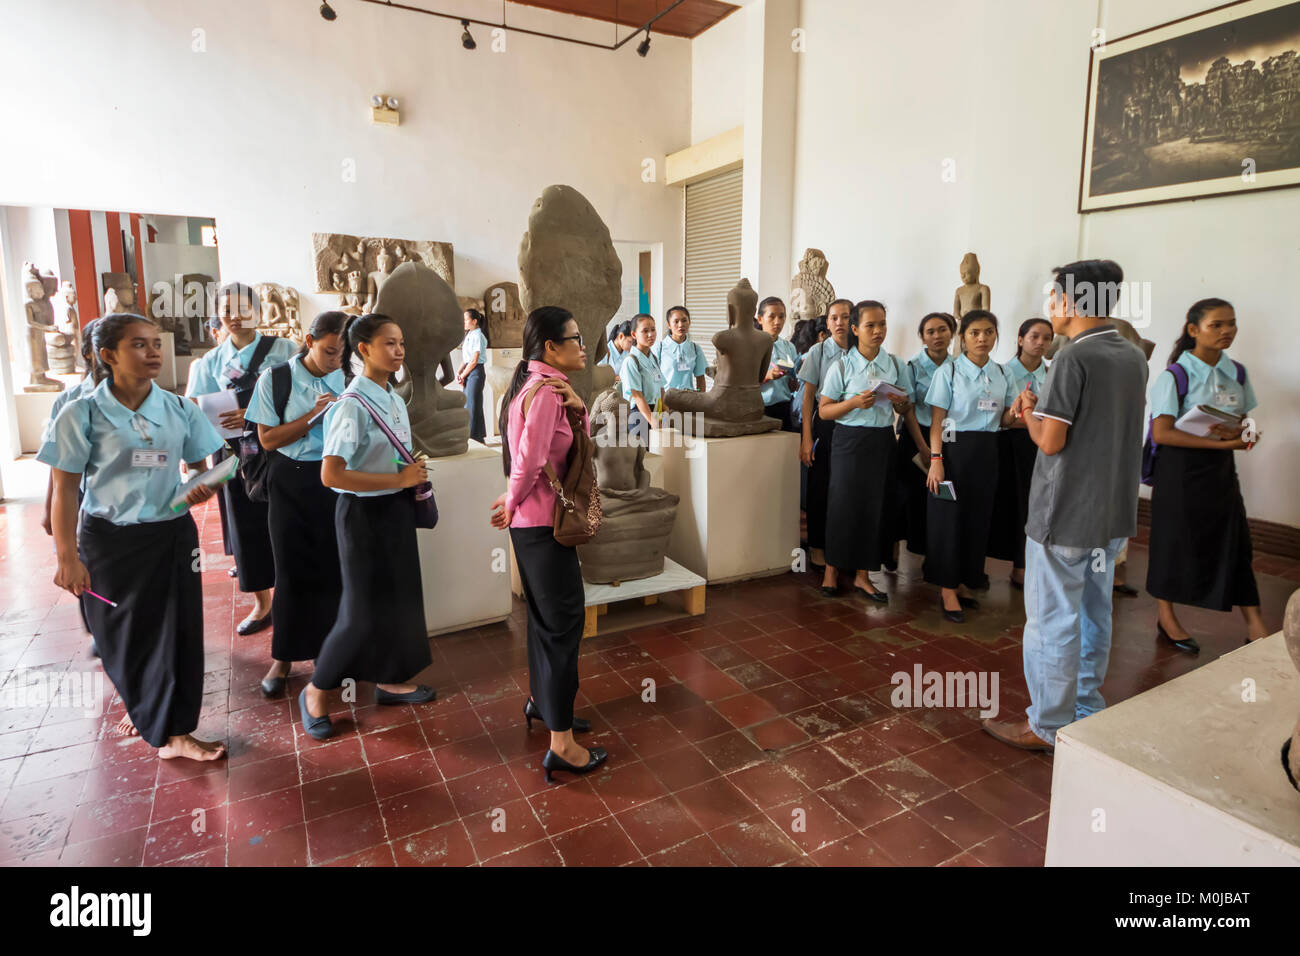 School girls in the Gallery of Khmer Art at the National Museum of Arts; Phnom Penh, Cambodia - Stock Image